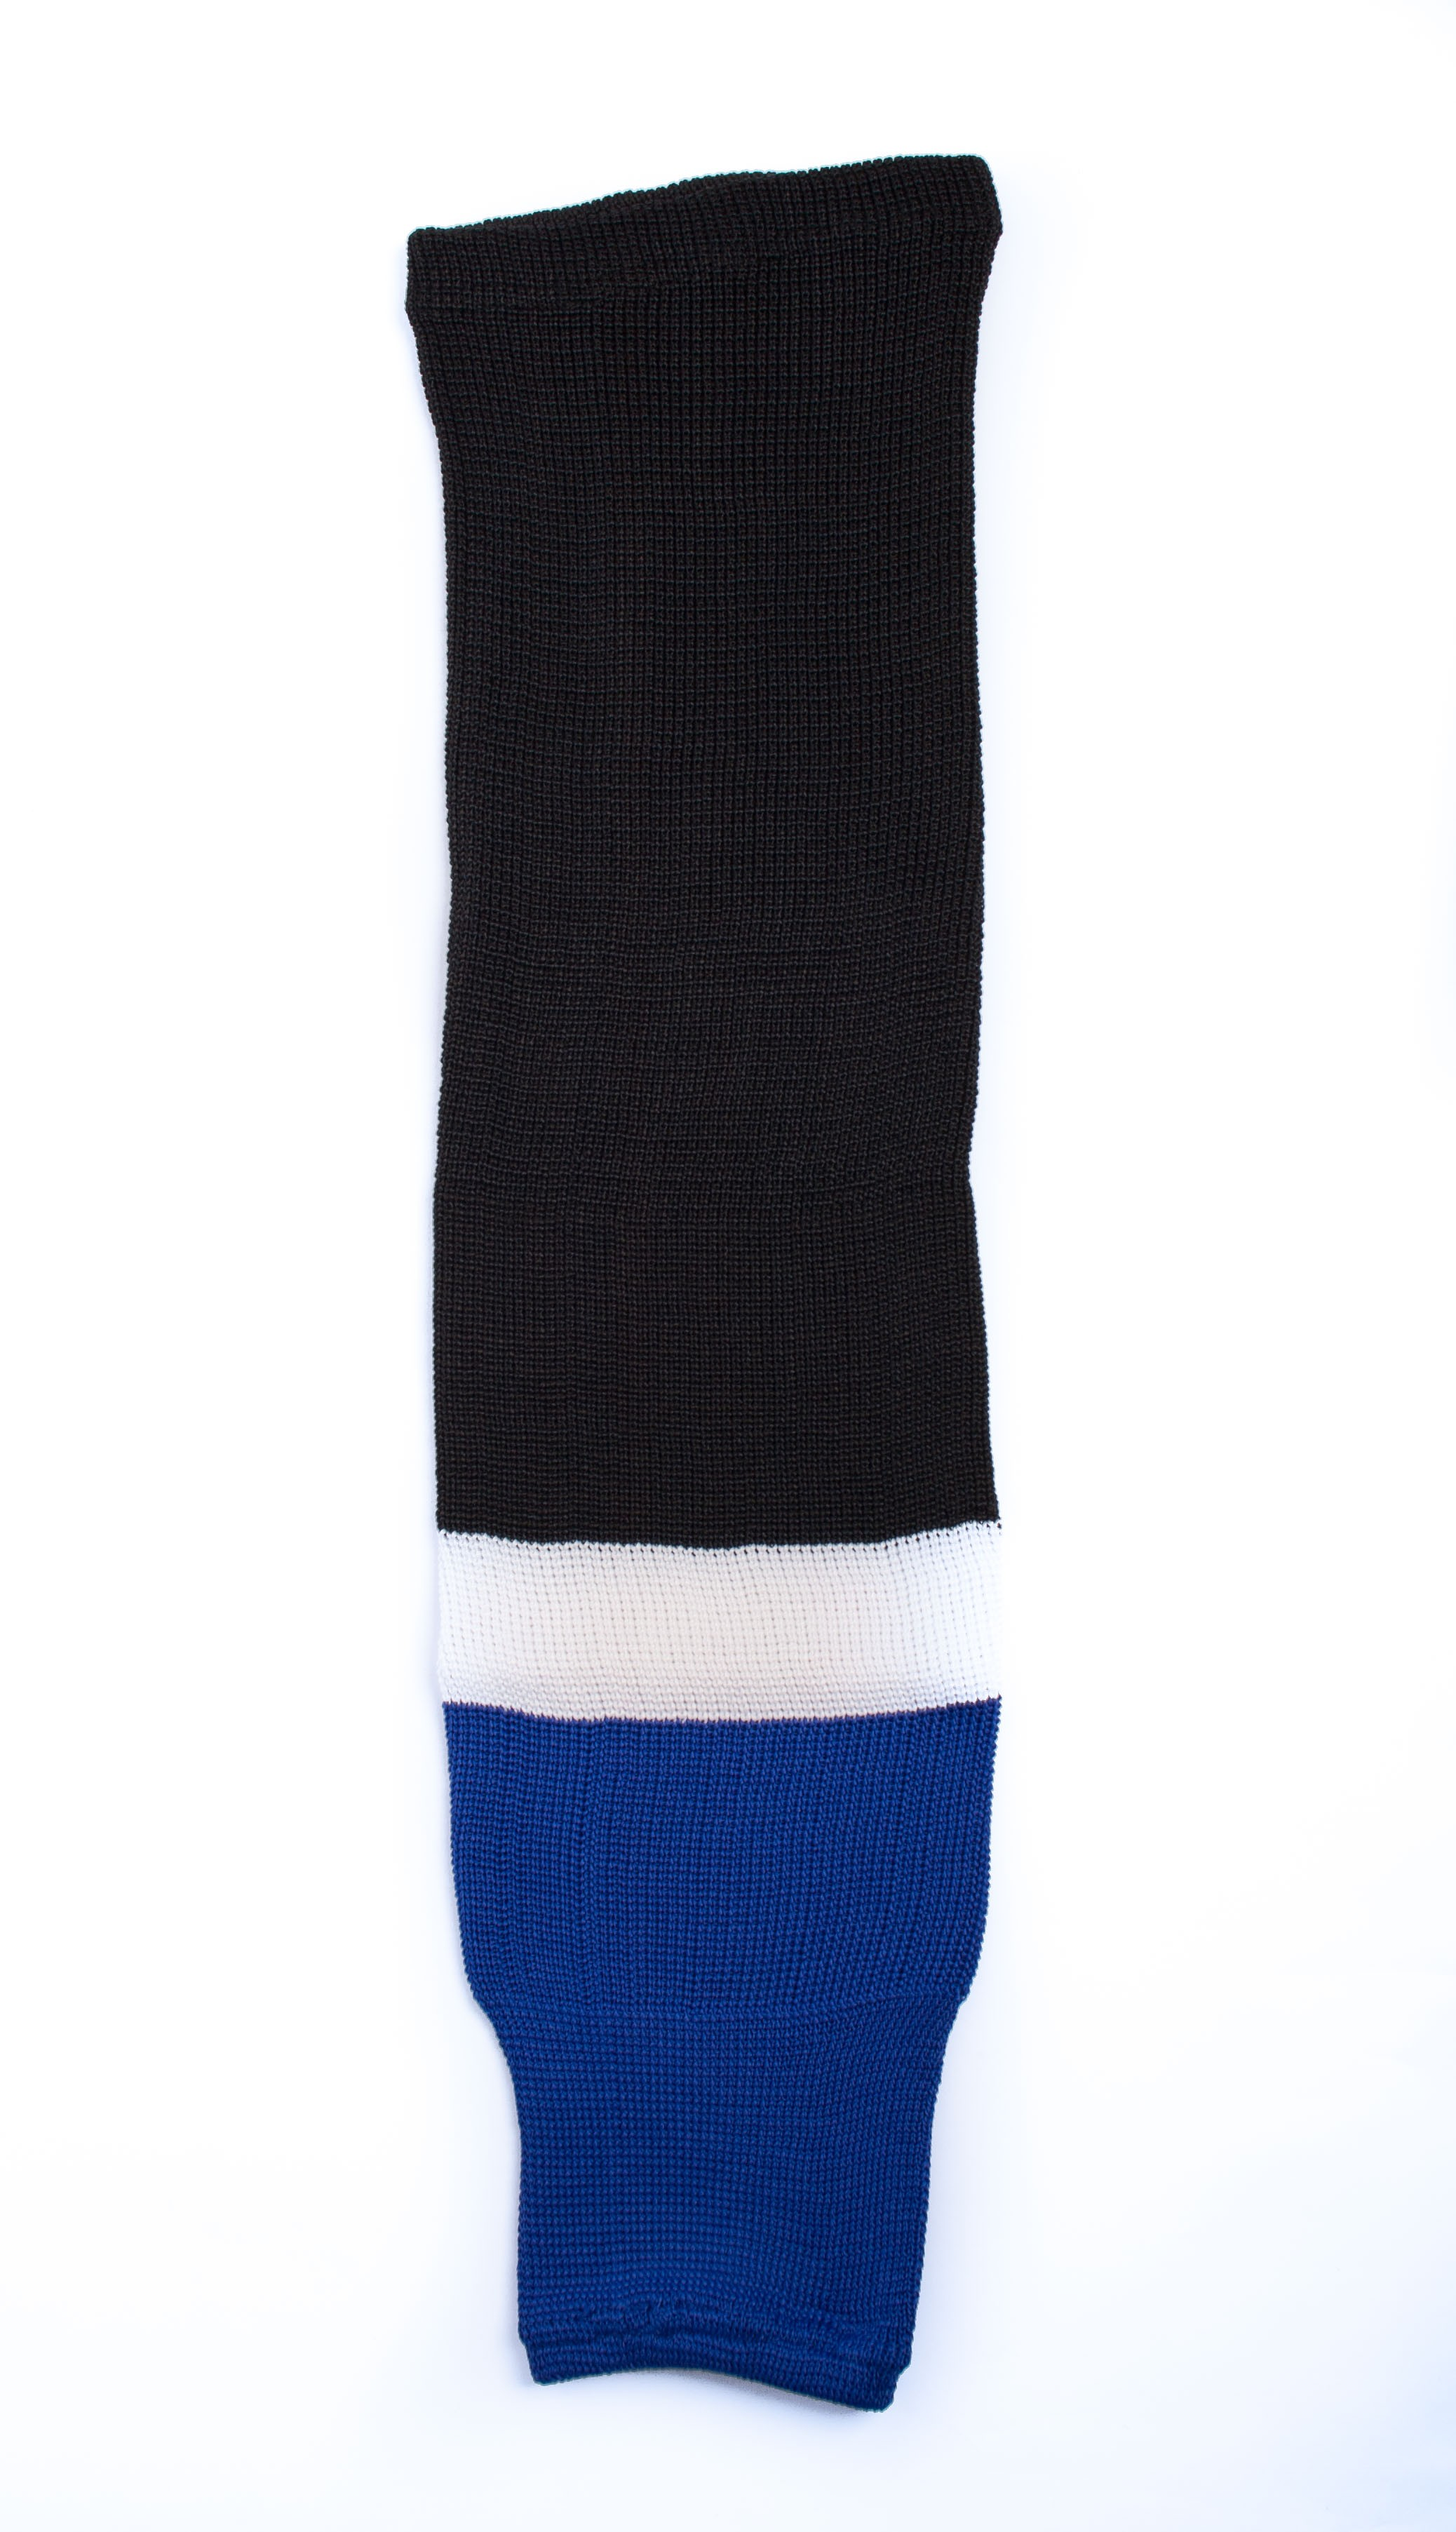 HOKEJAM.LV Knit Adult Hockey Socks#019